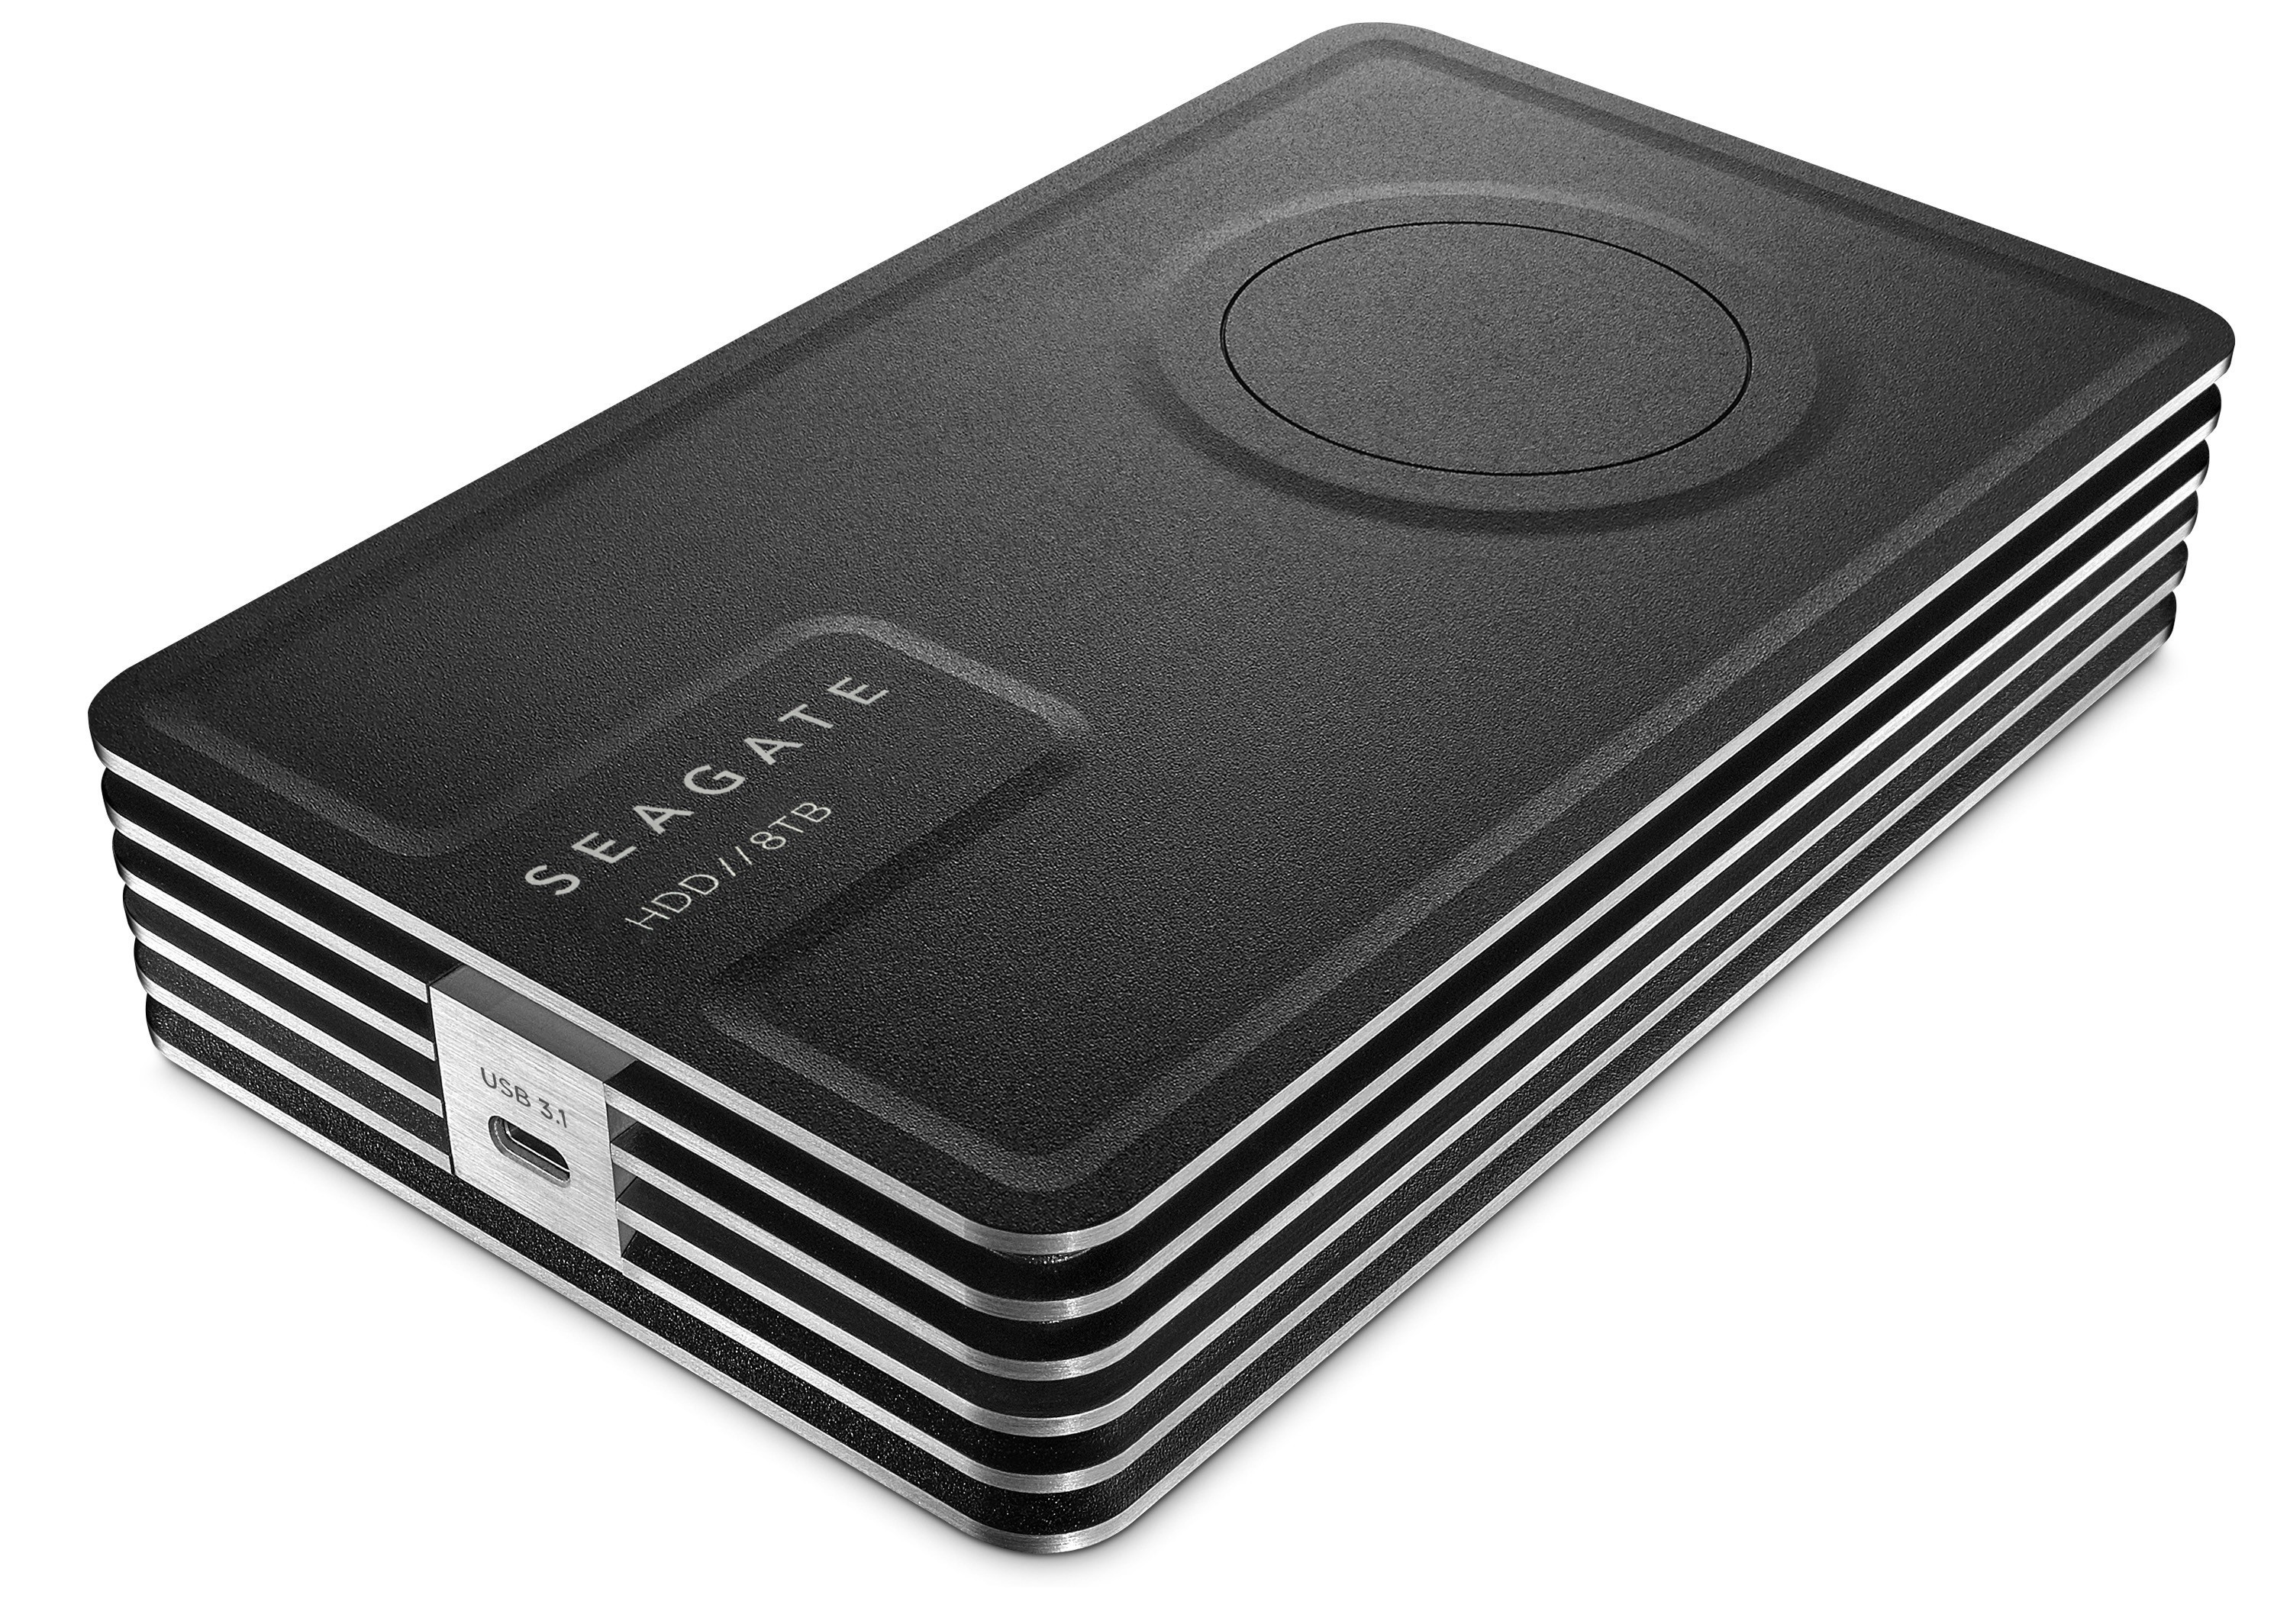 Seagate Innov8 is the world's first USB-powered desktop HDD that offers 8TB of storage